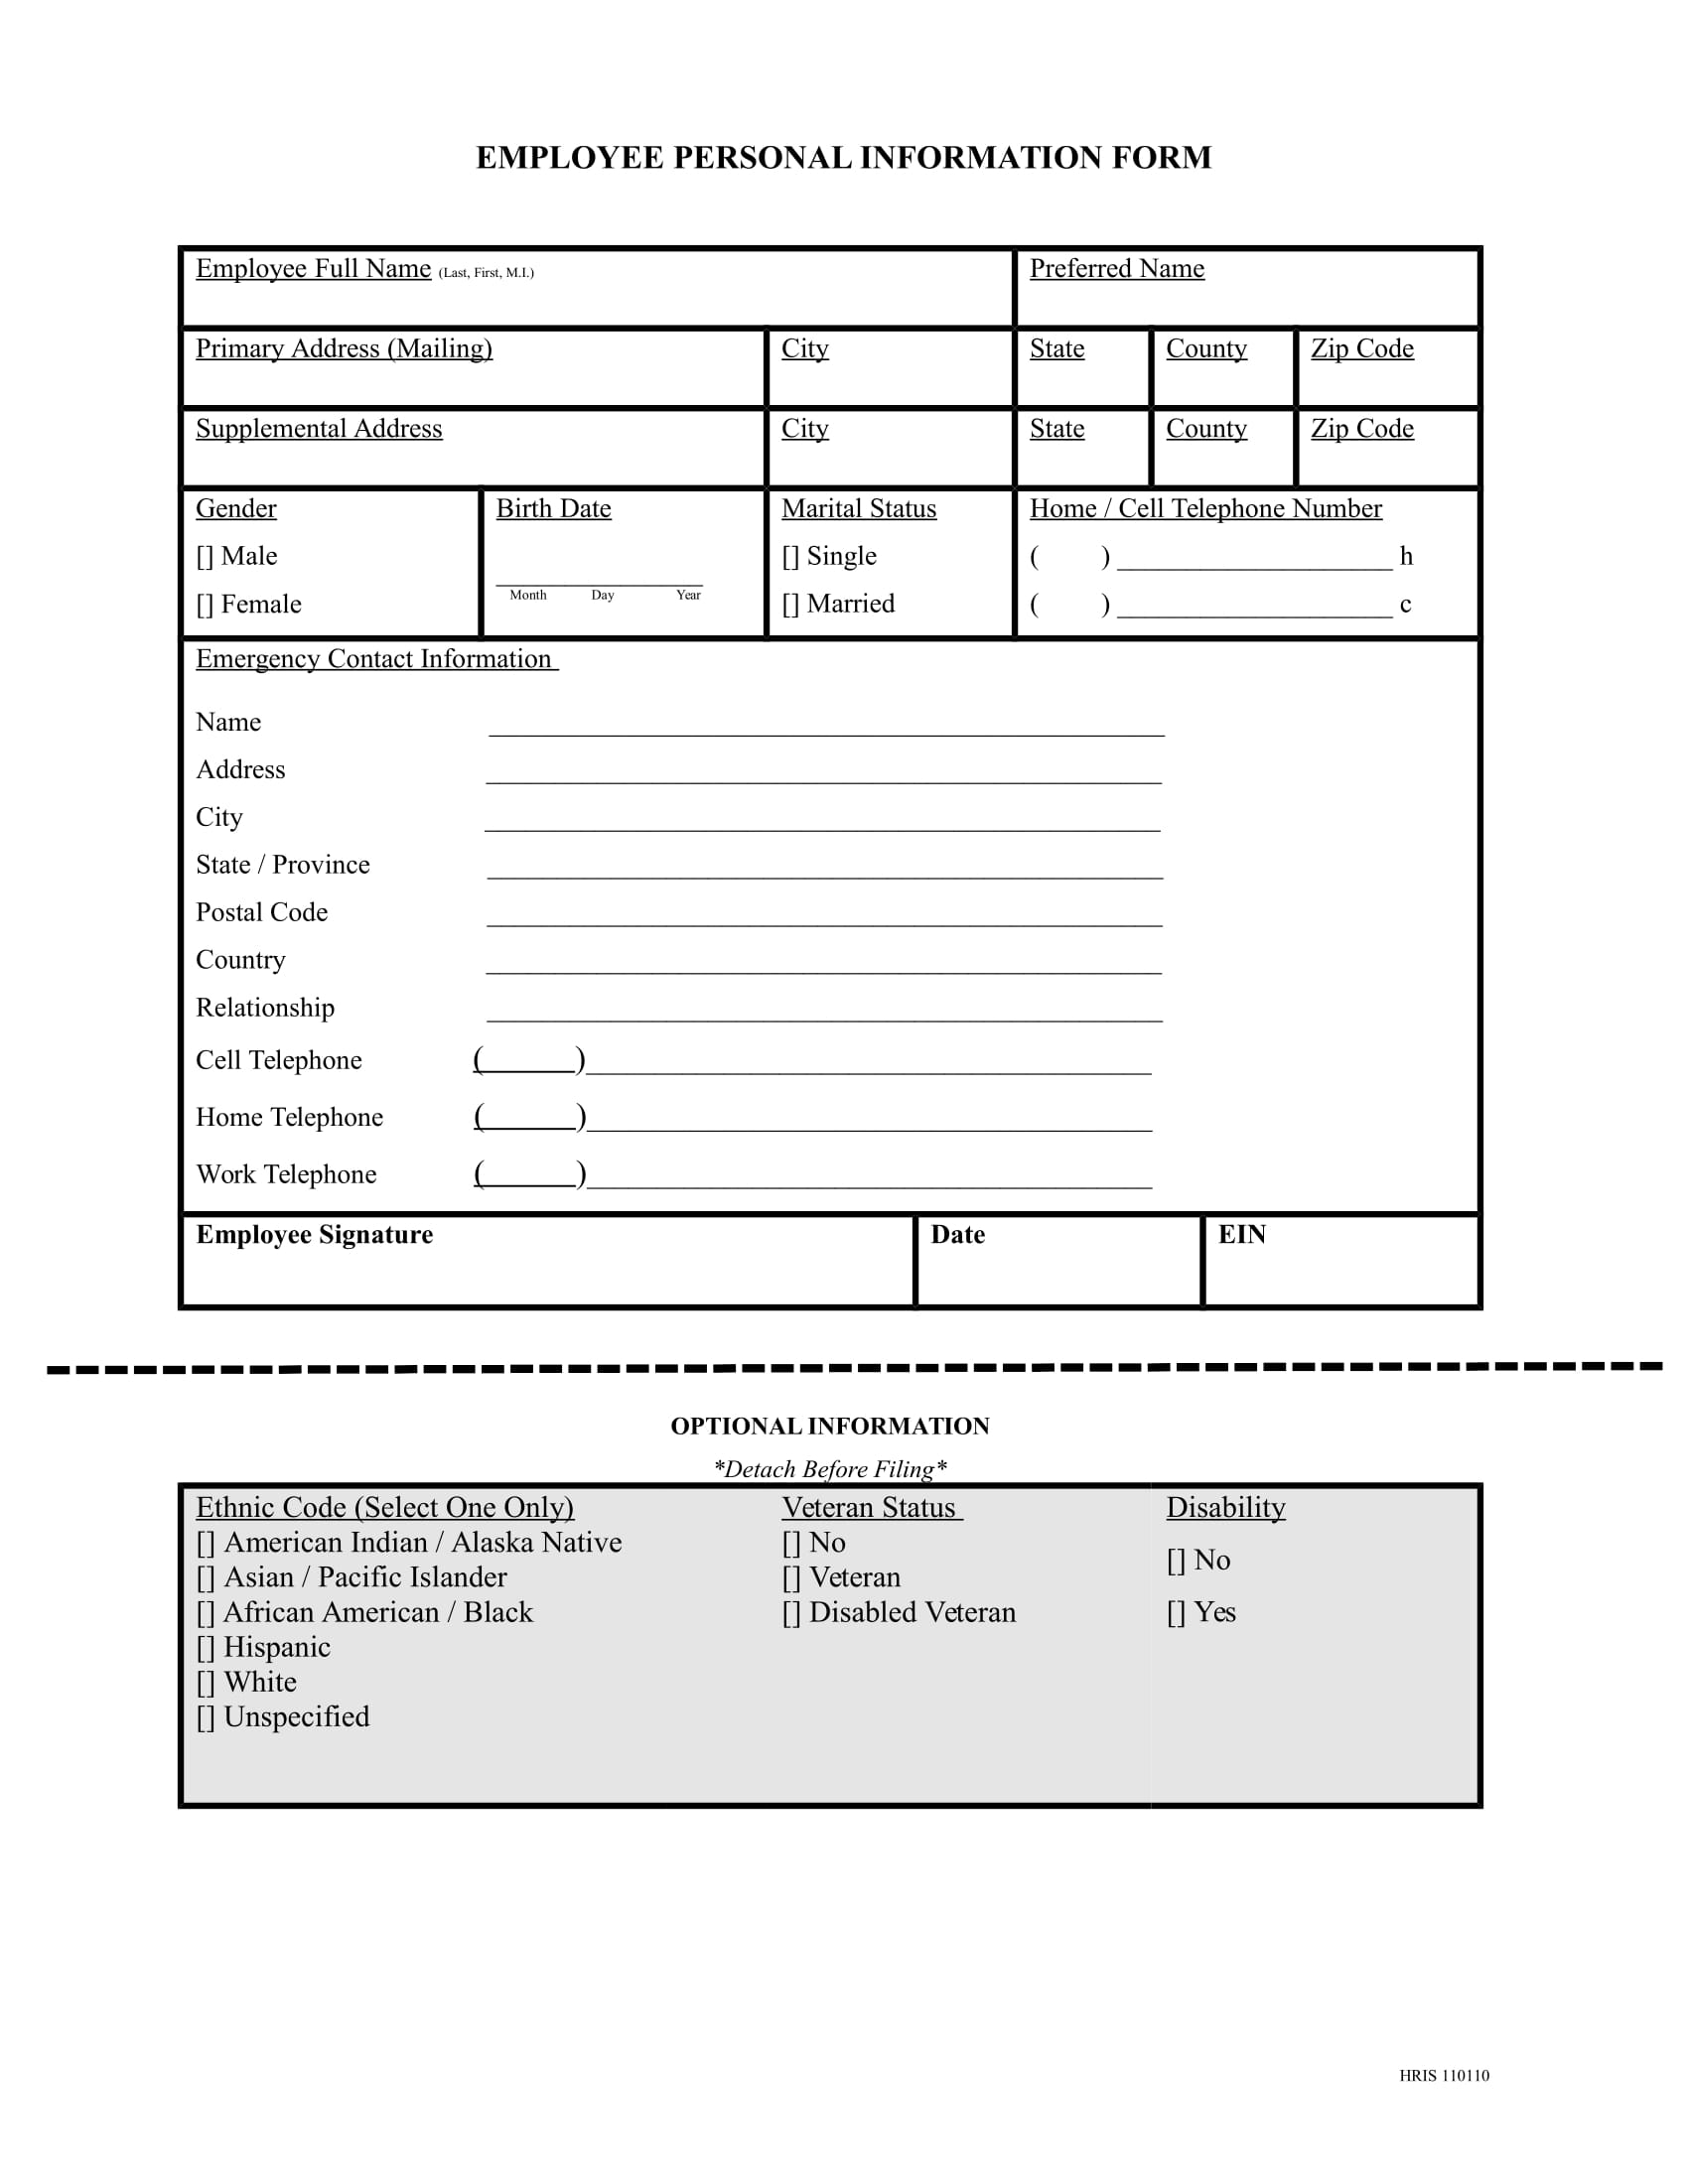 employee personal information form 1